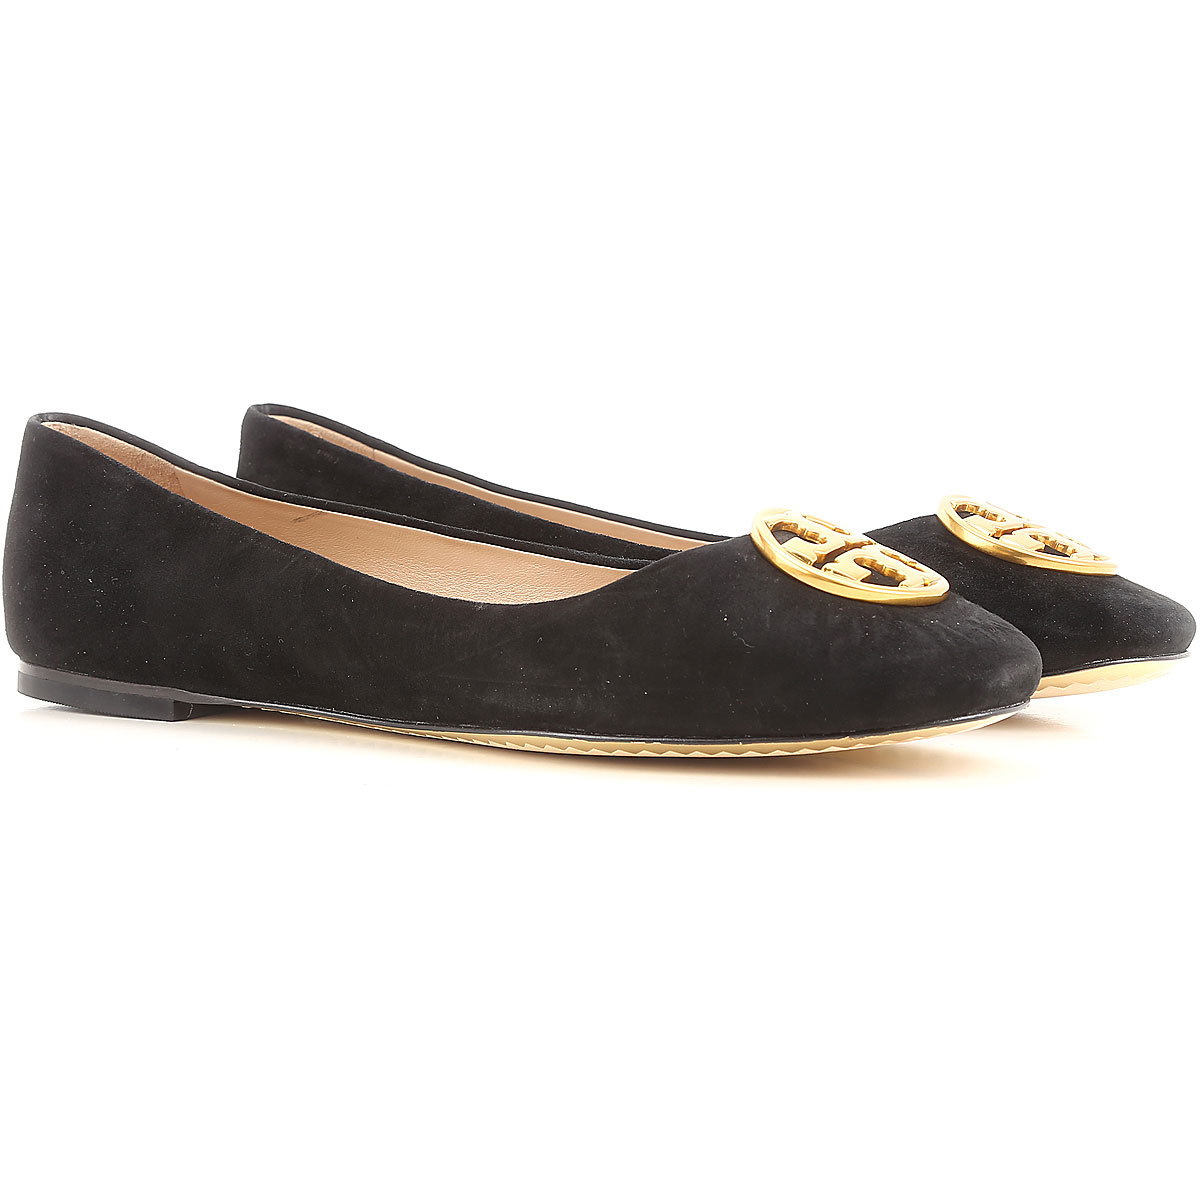 Image of Tory Burch Ballet Flats Ballerina Shoes for Women On Sale in Outlet, Black, Suede leather, 2017, 5.5 6